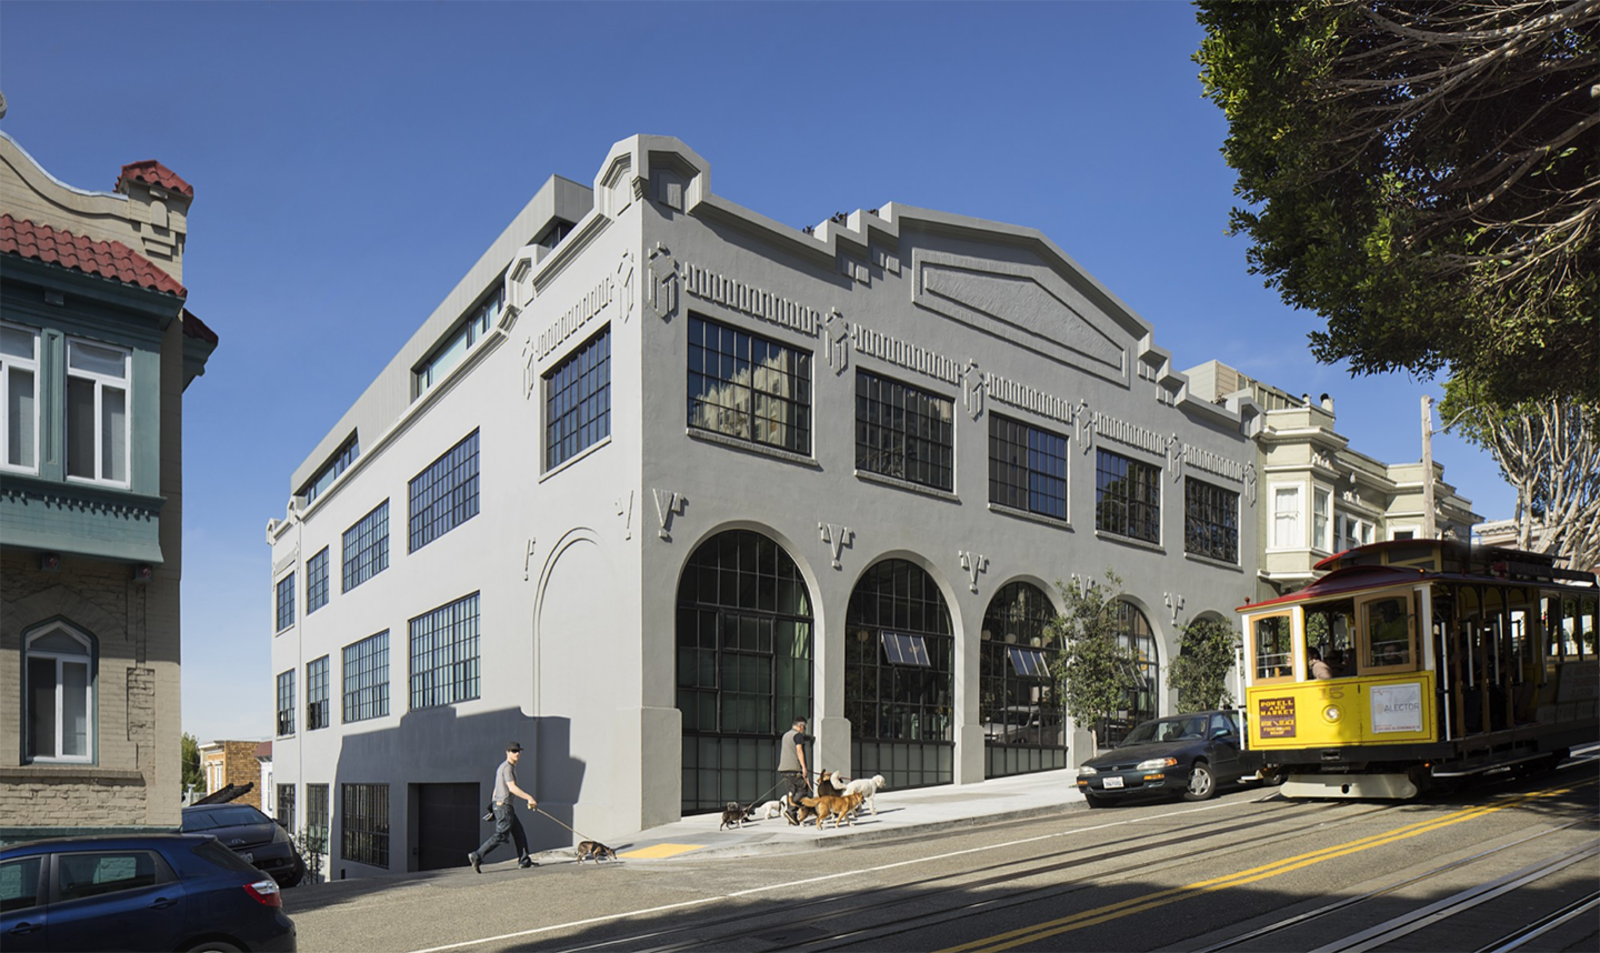 The facade of a concrete, two-story building on a sunny day, with arched windows and a San Francisco cable car running on the street.